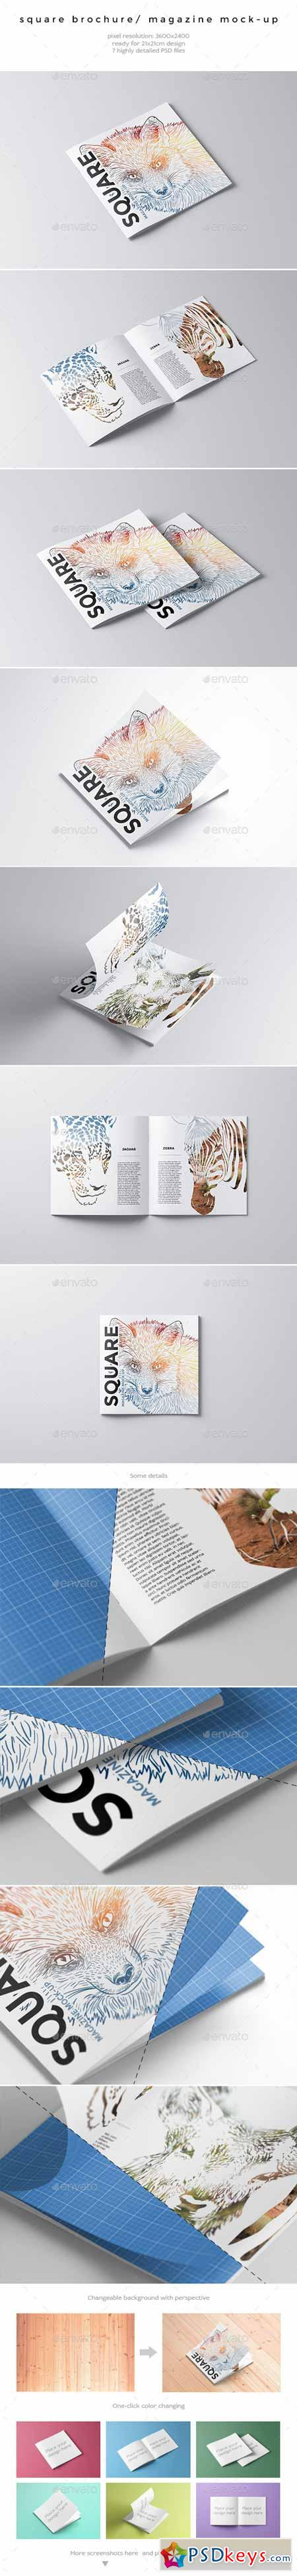 Mock-UP » page 204 » Free Download Photoshop Vector Stock